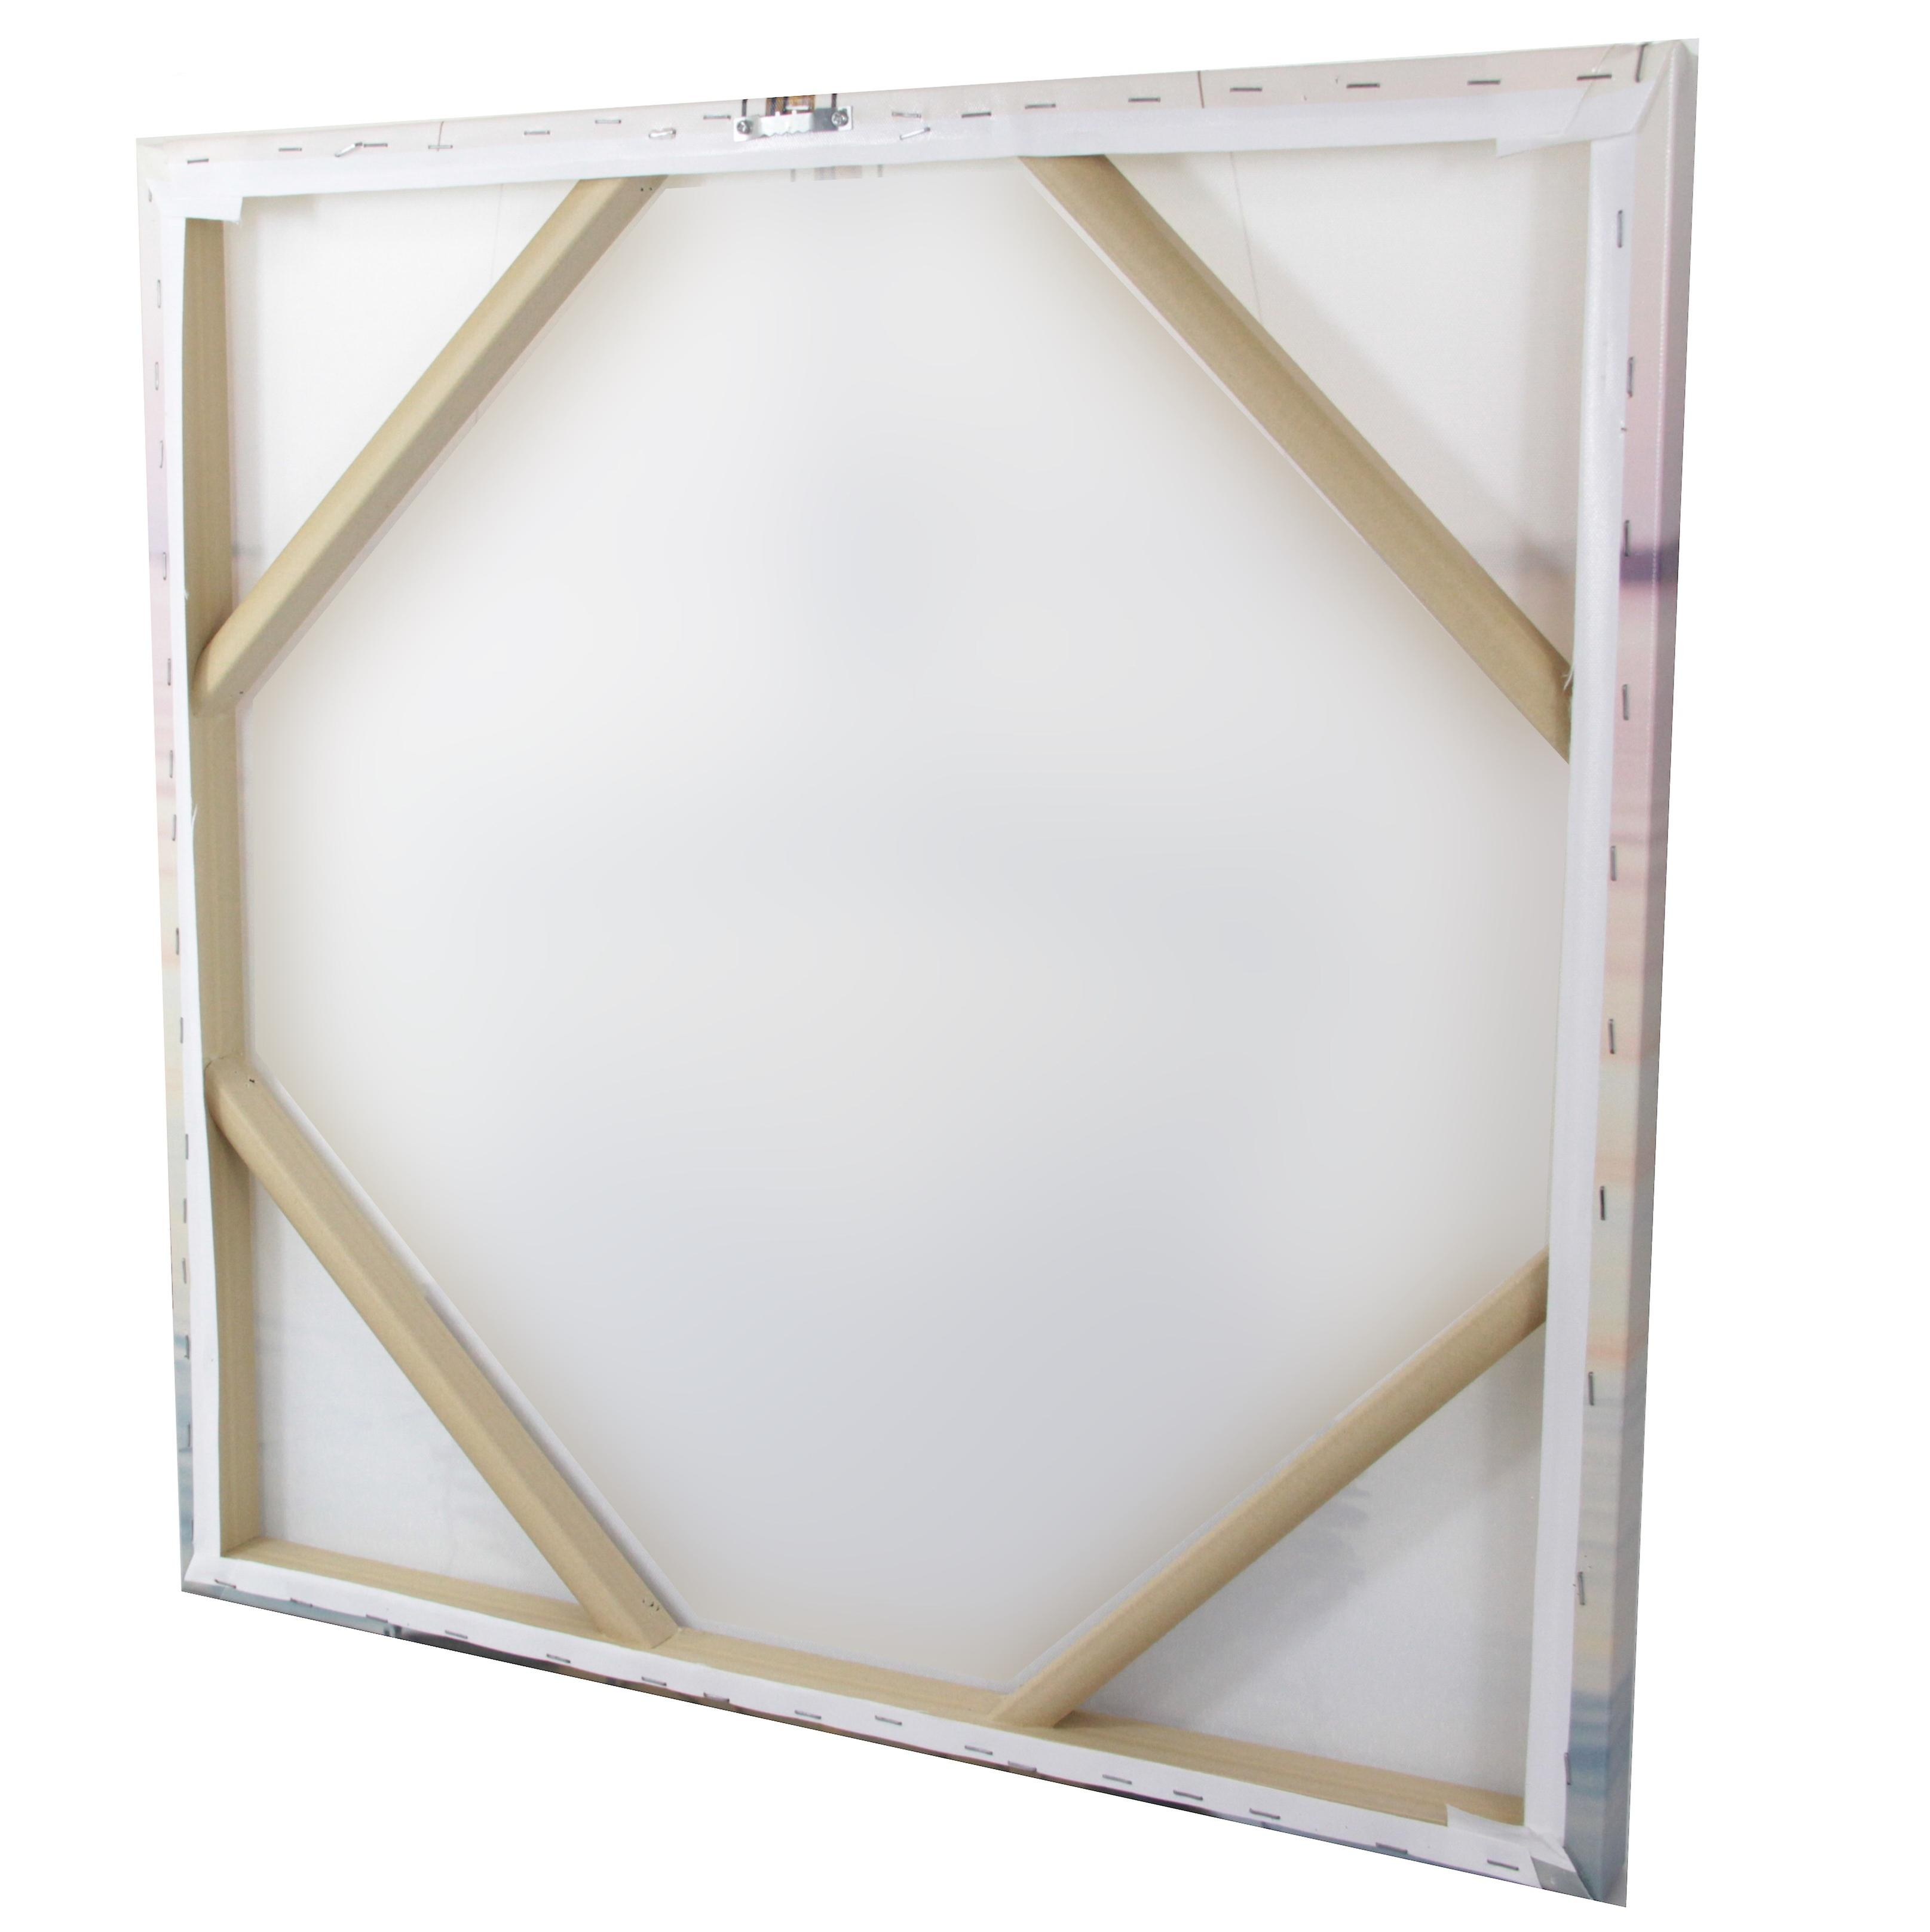 Photo Canvas Seashore, Wall Art 90 x 60 cm Attached to Real Wooden Framework